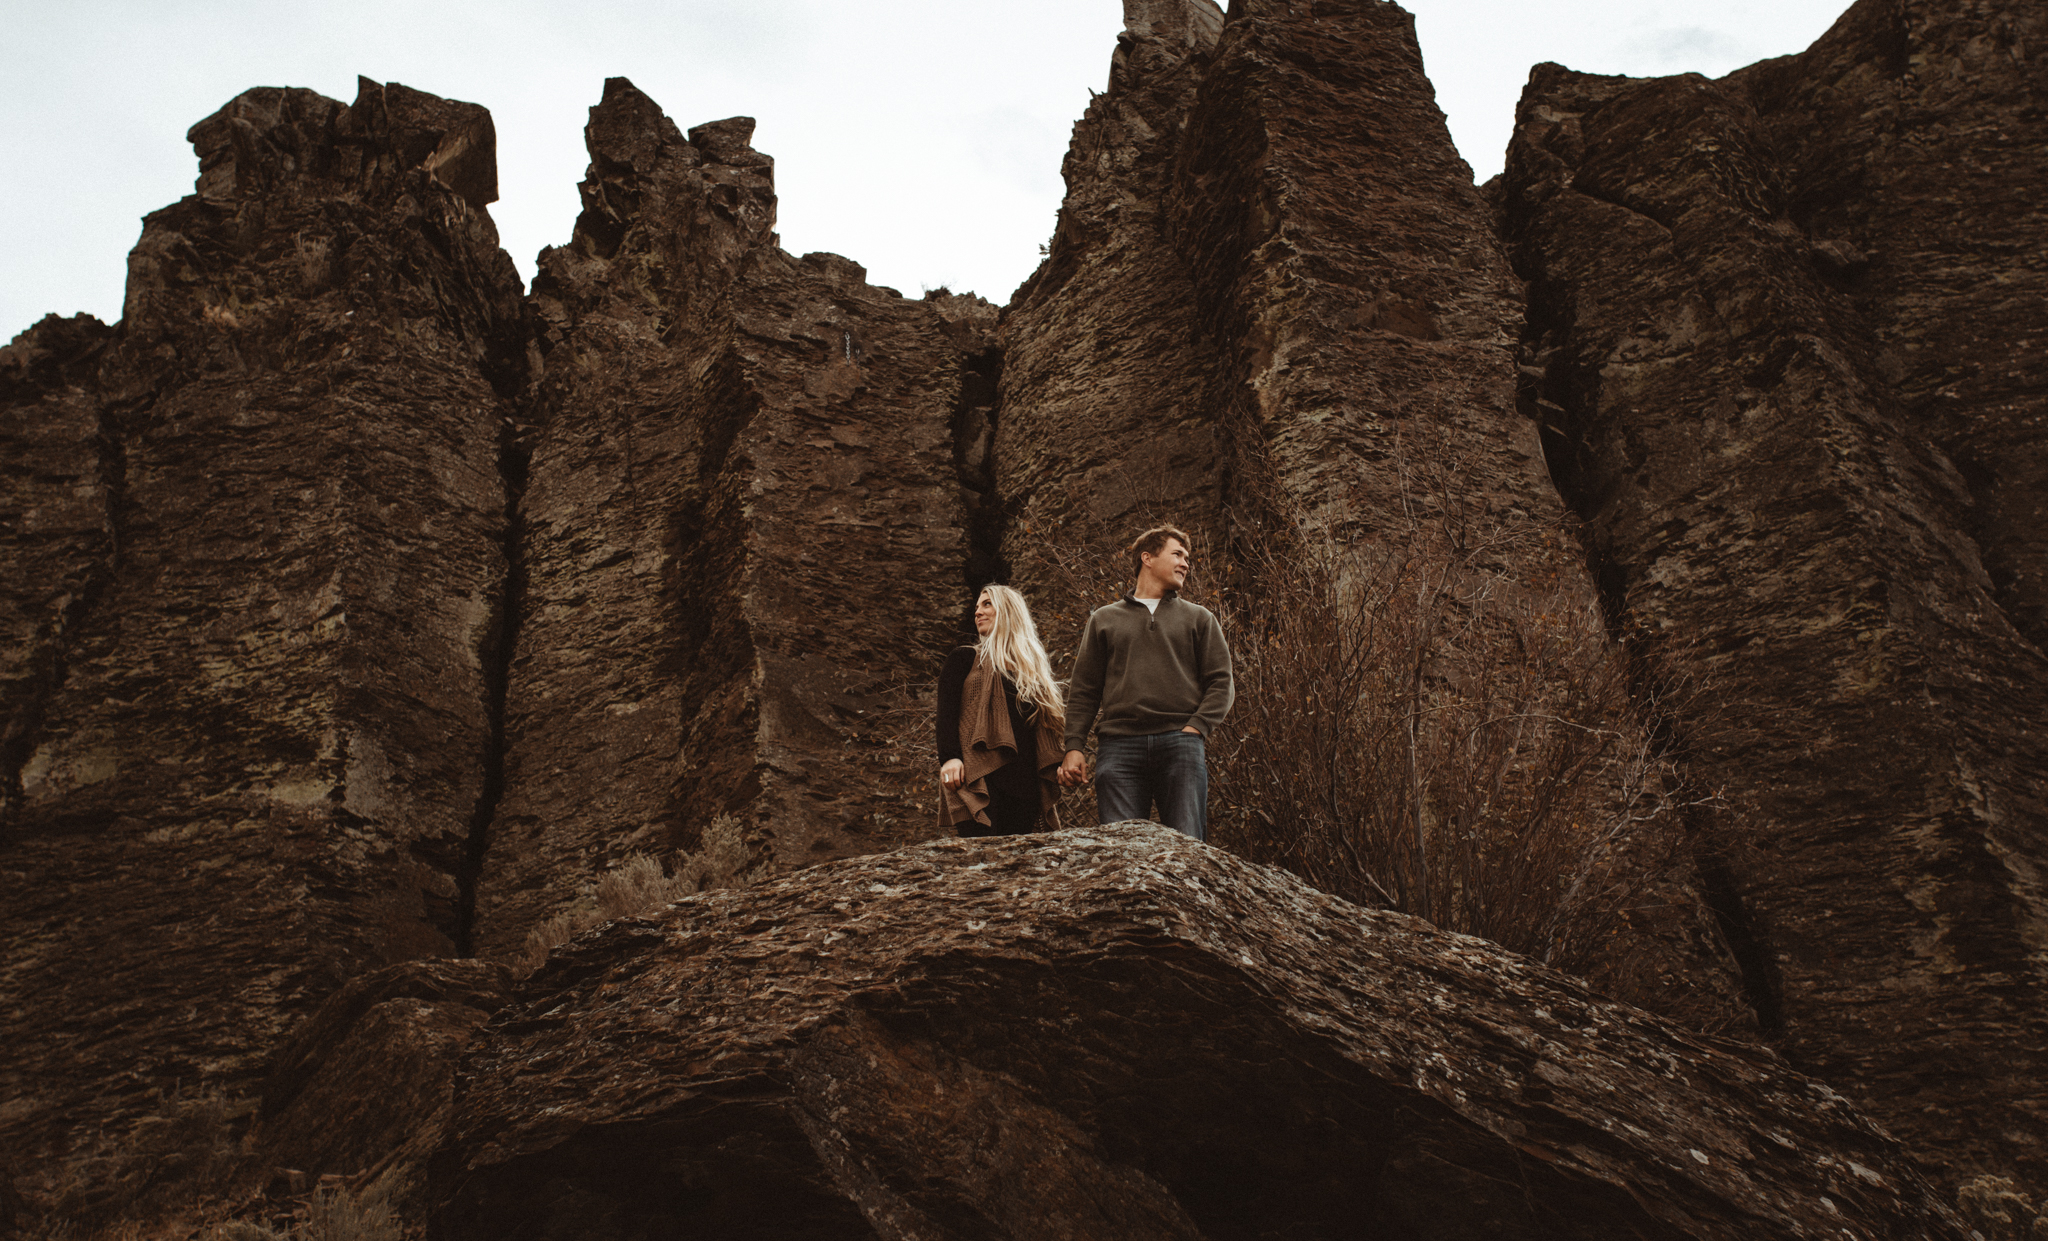 josh and anna | adventurous anniversary shoot | George washington | Christi Childs photography  (36 of 101).jpg